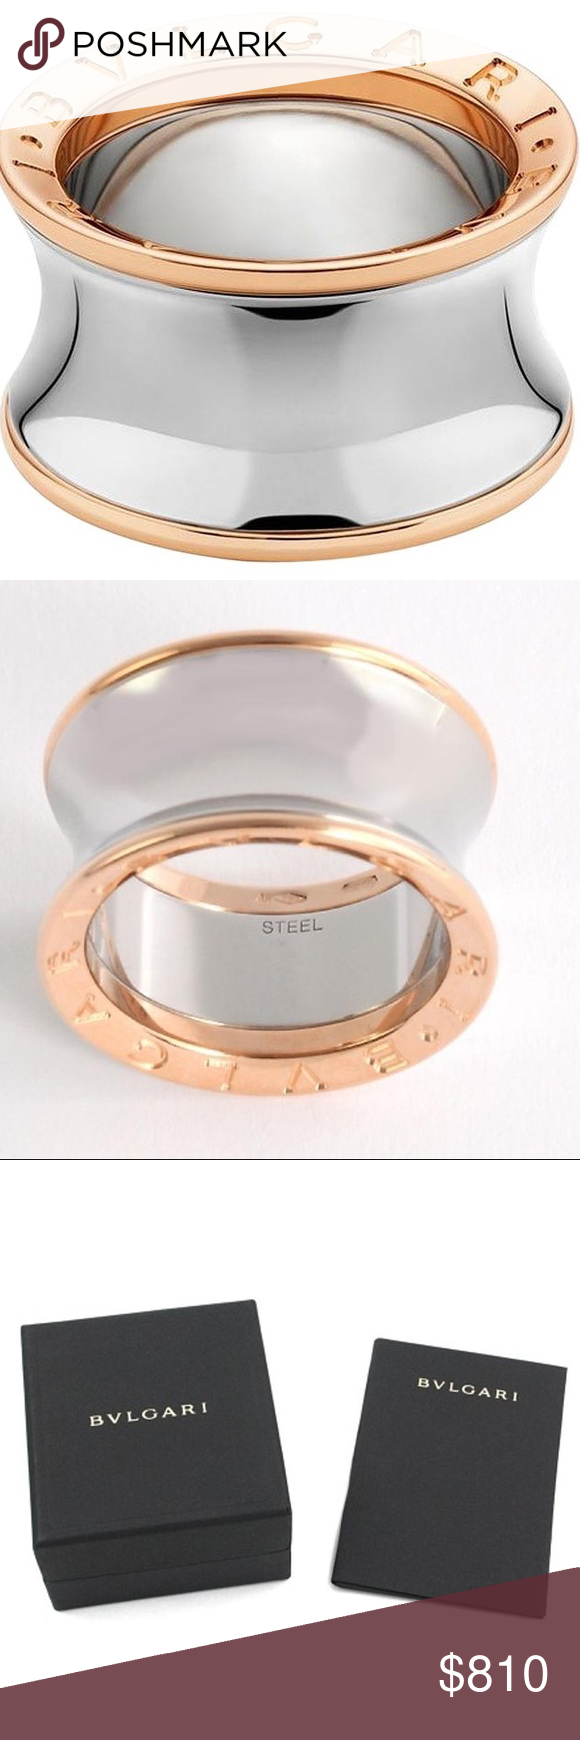 bvlgari anish kapoor rose gold steel ring bvlgari anish kapoor rose gold steel ring gender women material rose gold ring size u0026 8 item comes with an